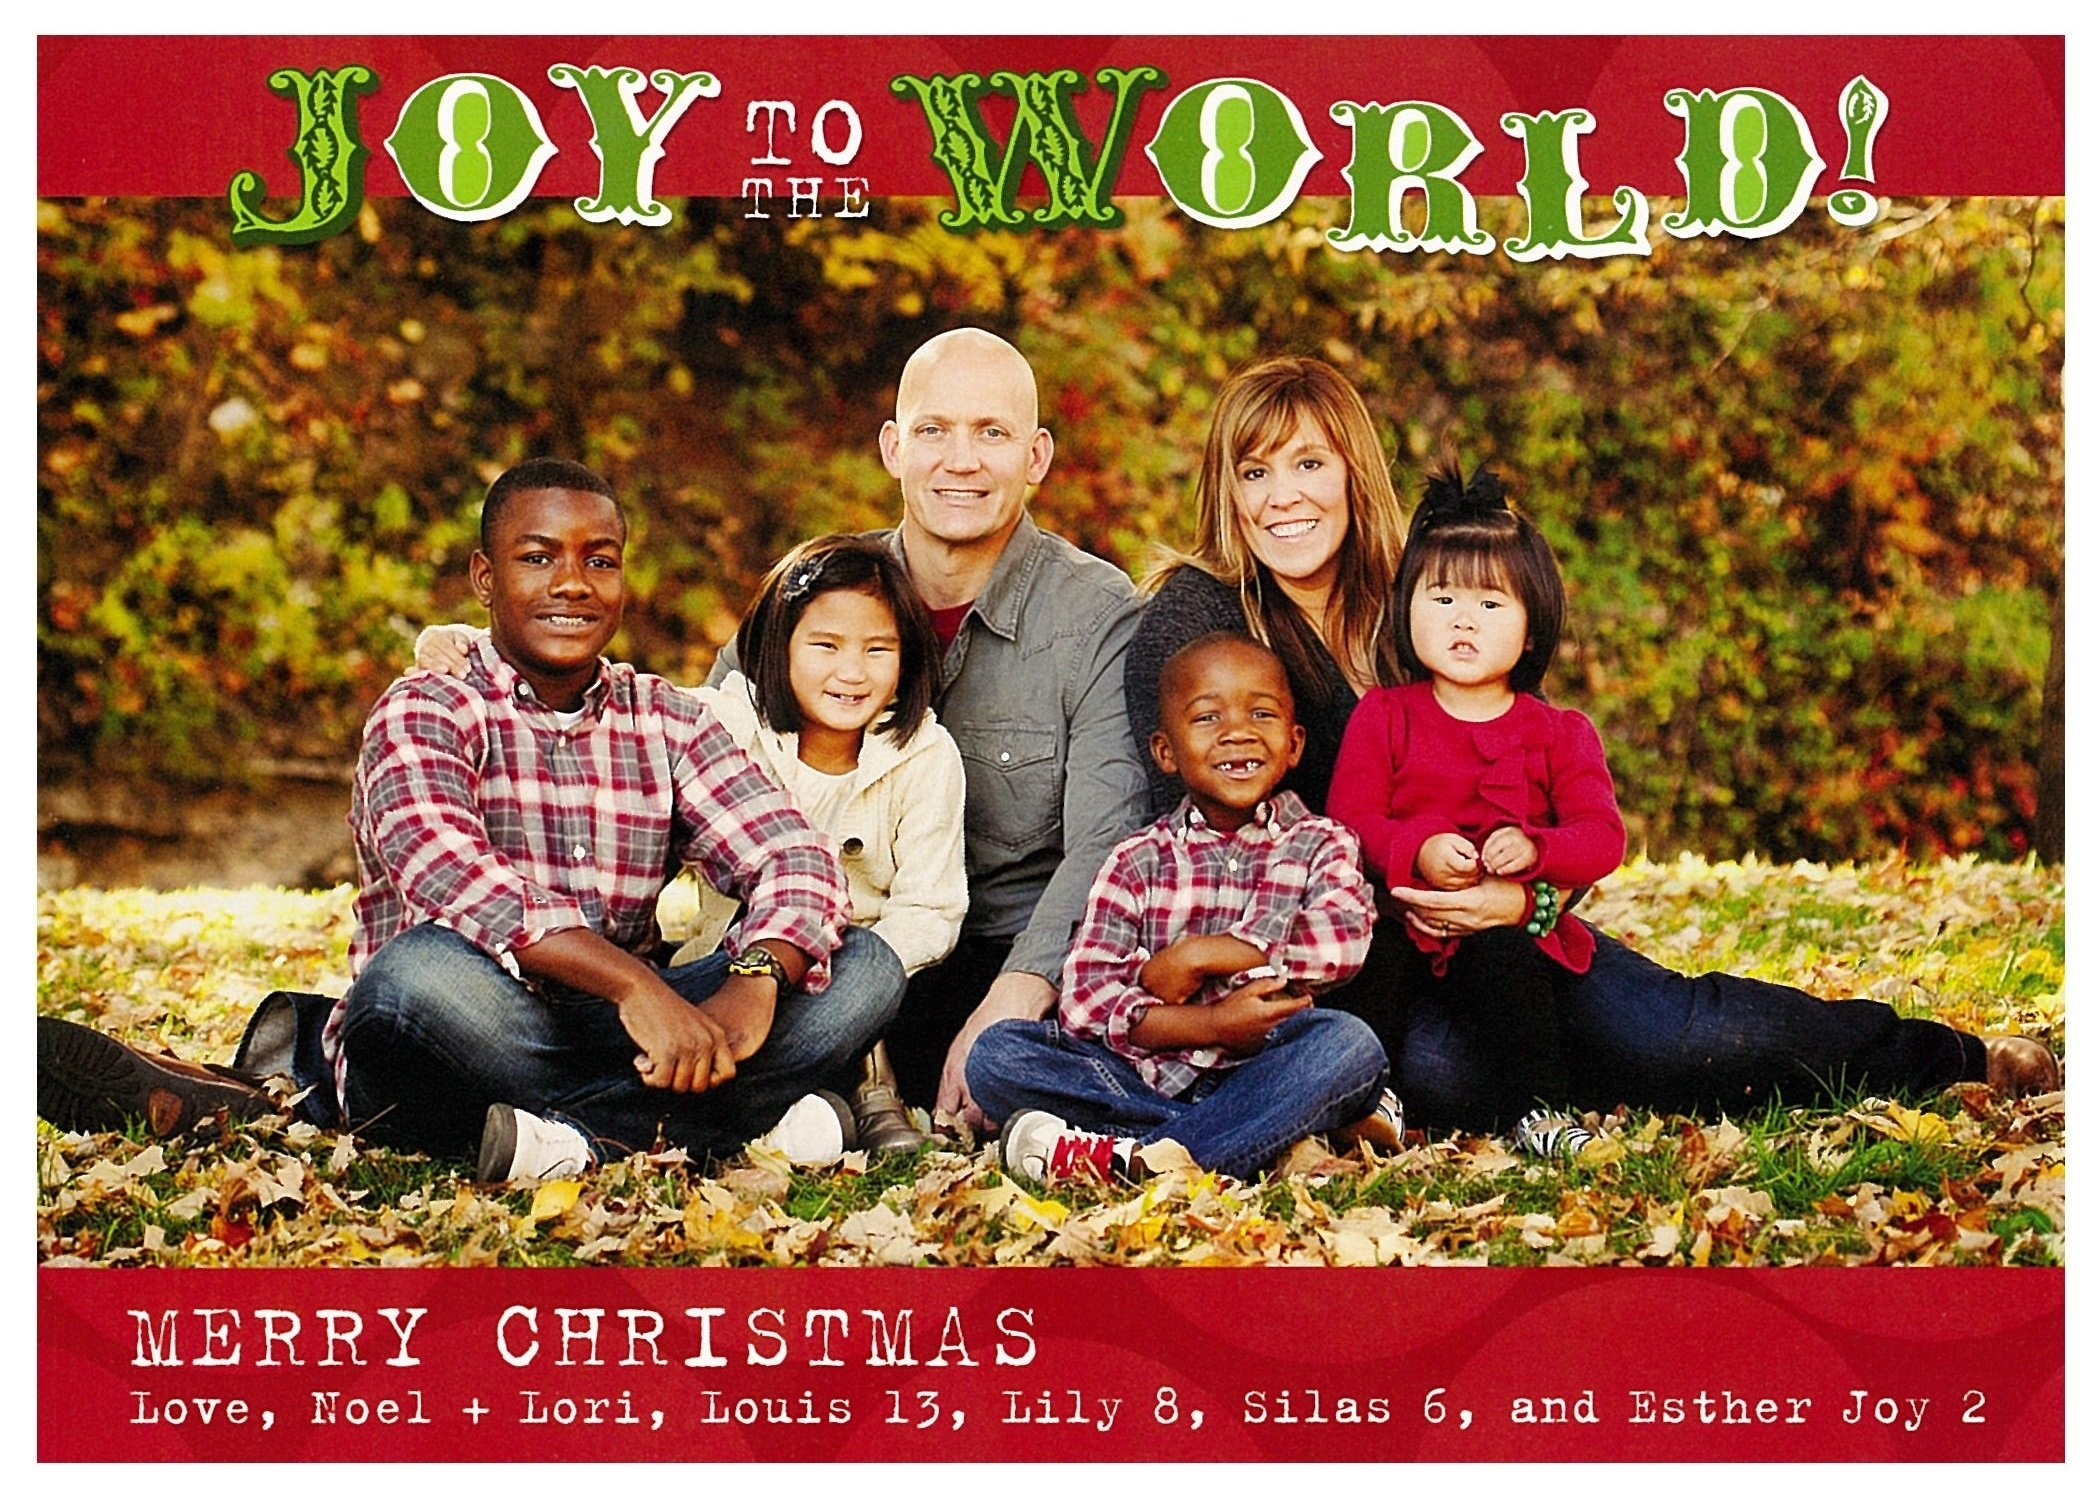 10 Unique Family Christmas Card Picture Ideas christmas cards families outreach home art decor 55978